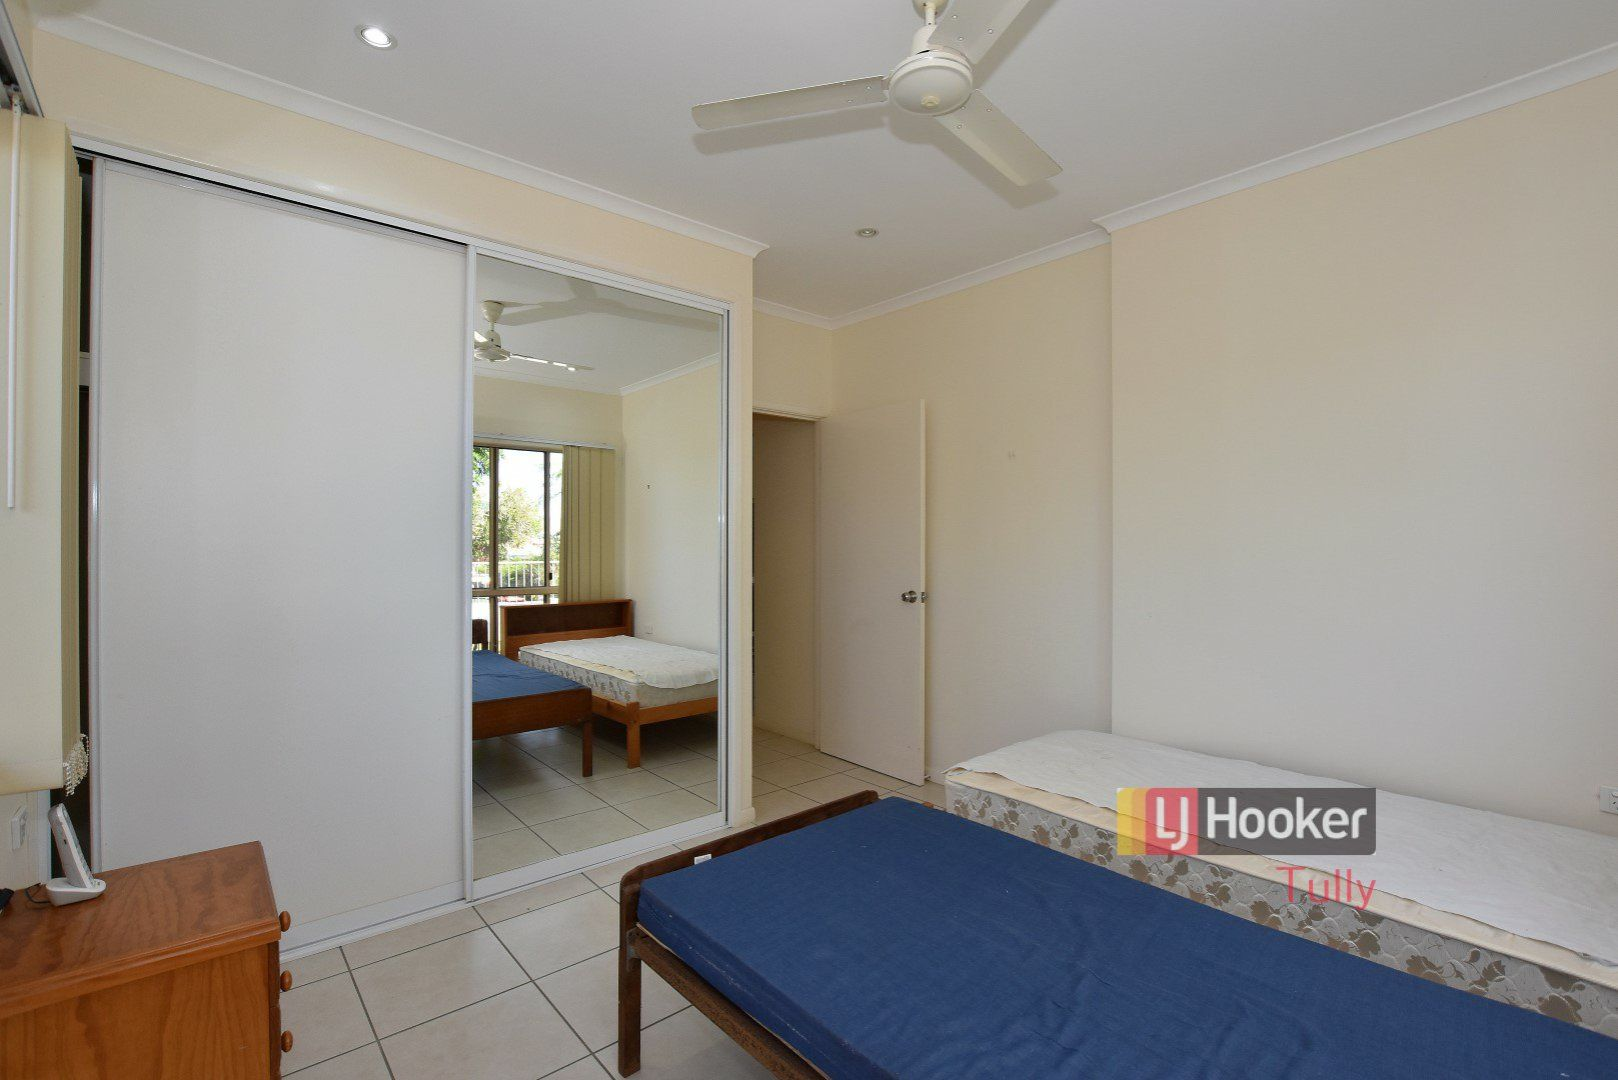 4/11 McQuillen Street, Tully QLD 4854, Image 2